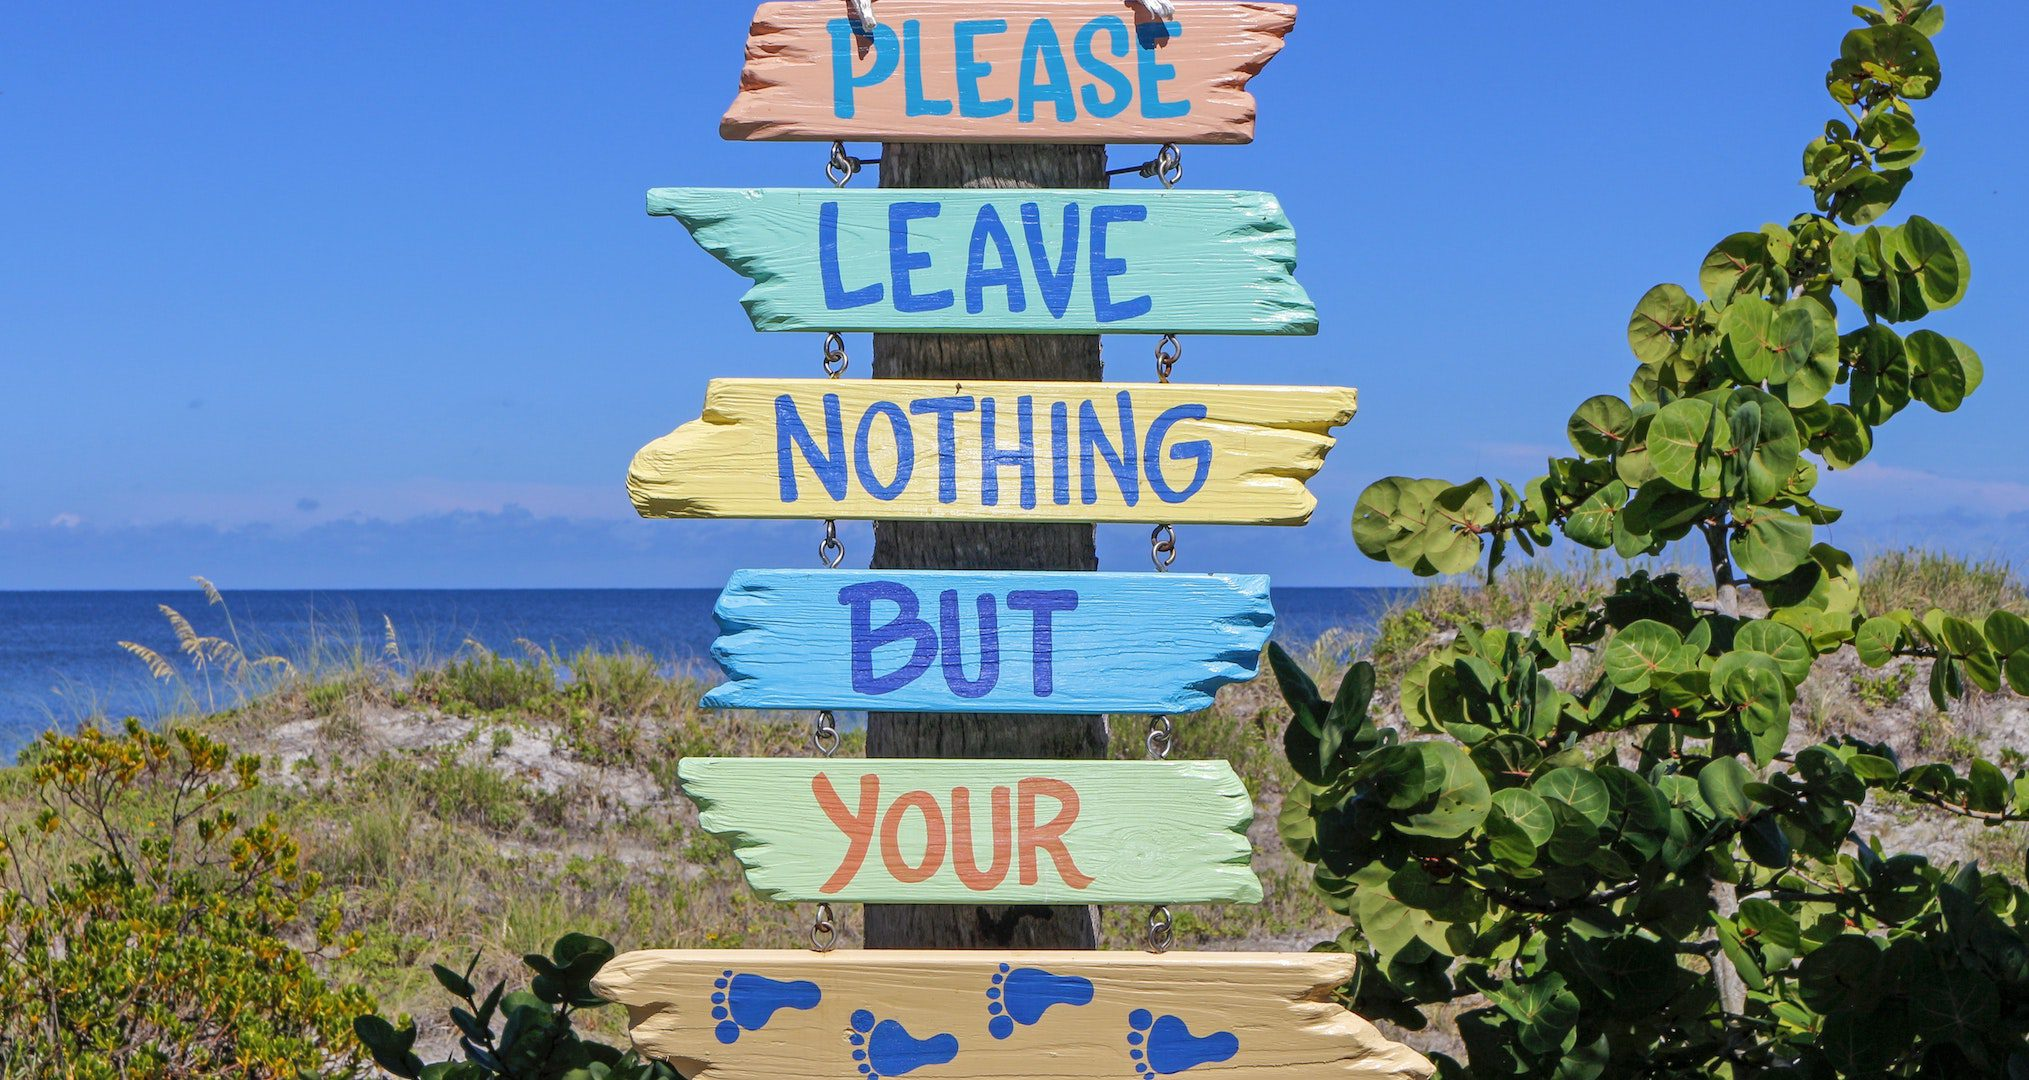 sign on beach saying please left nothing but your footprints